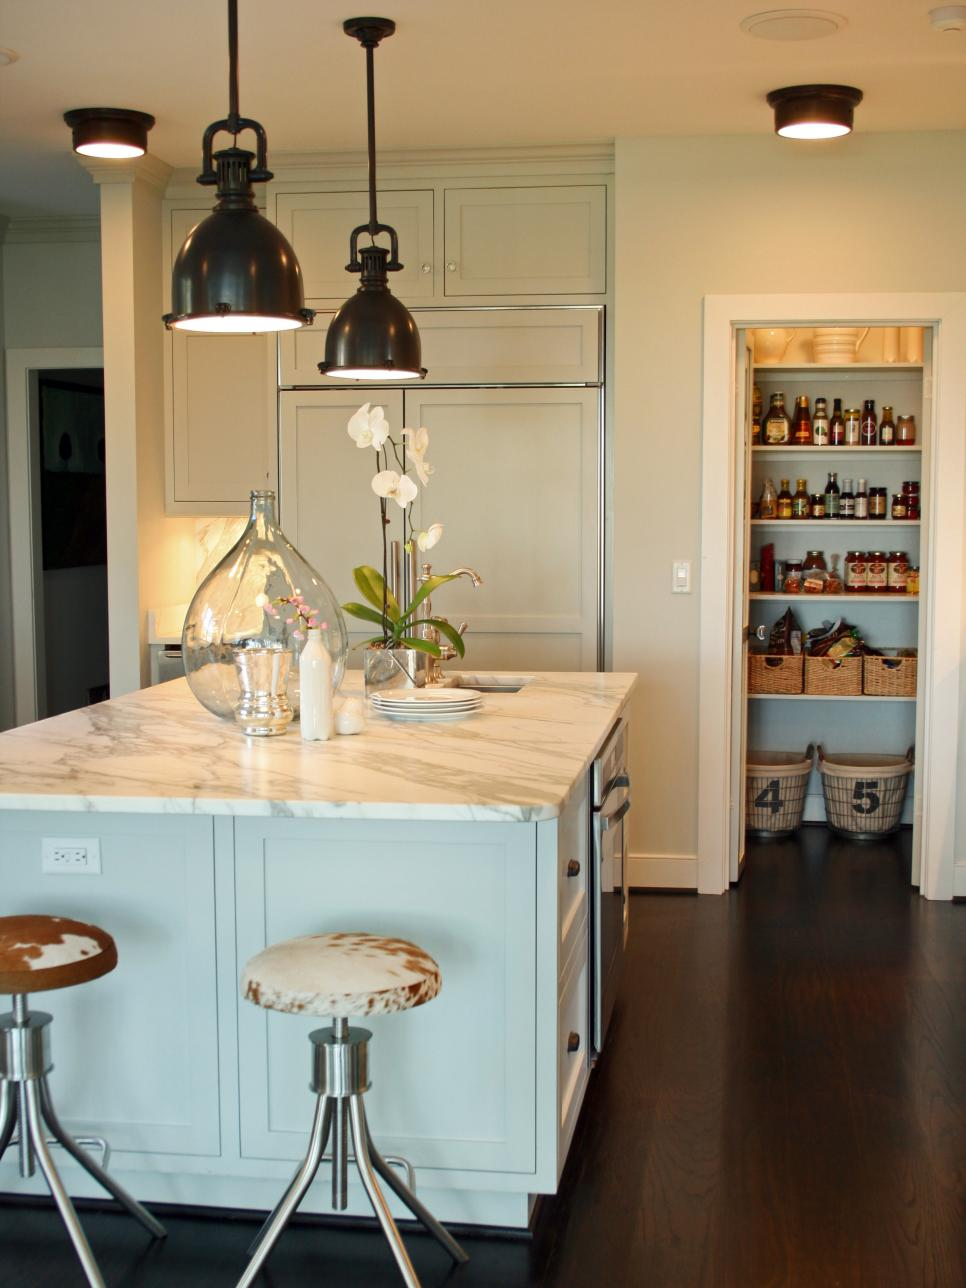 kitchen lighting design tips - Lighting Ideas For Kitchen